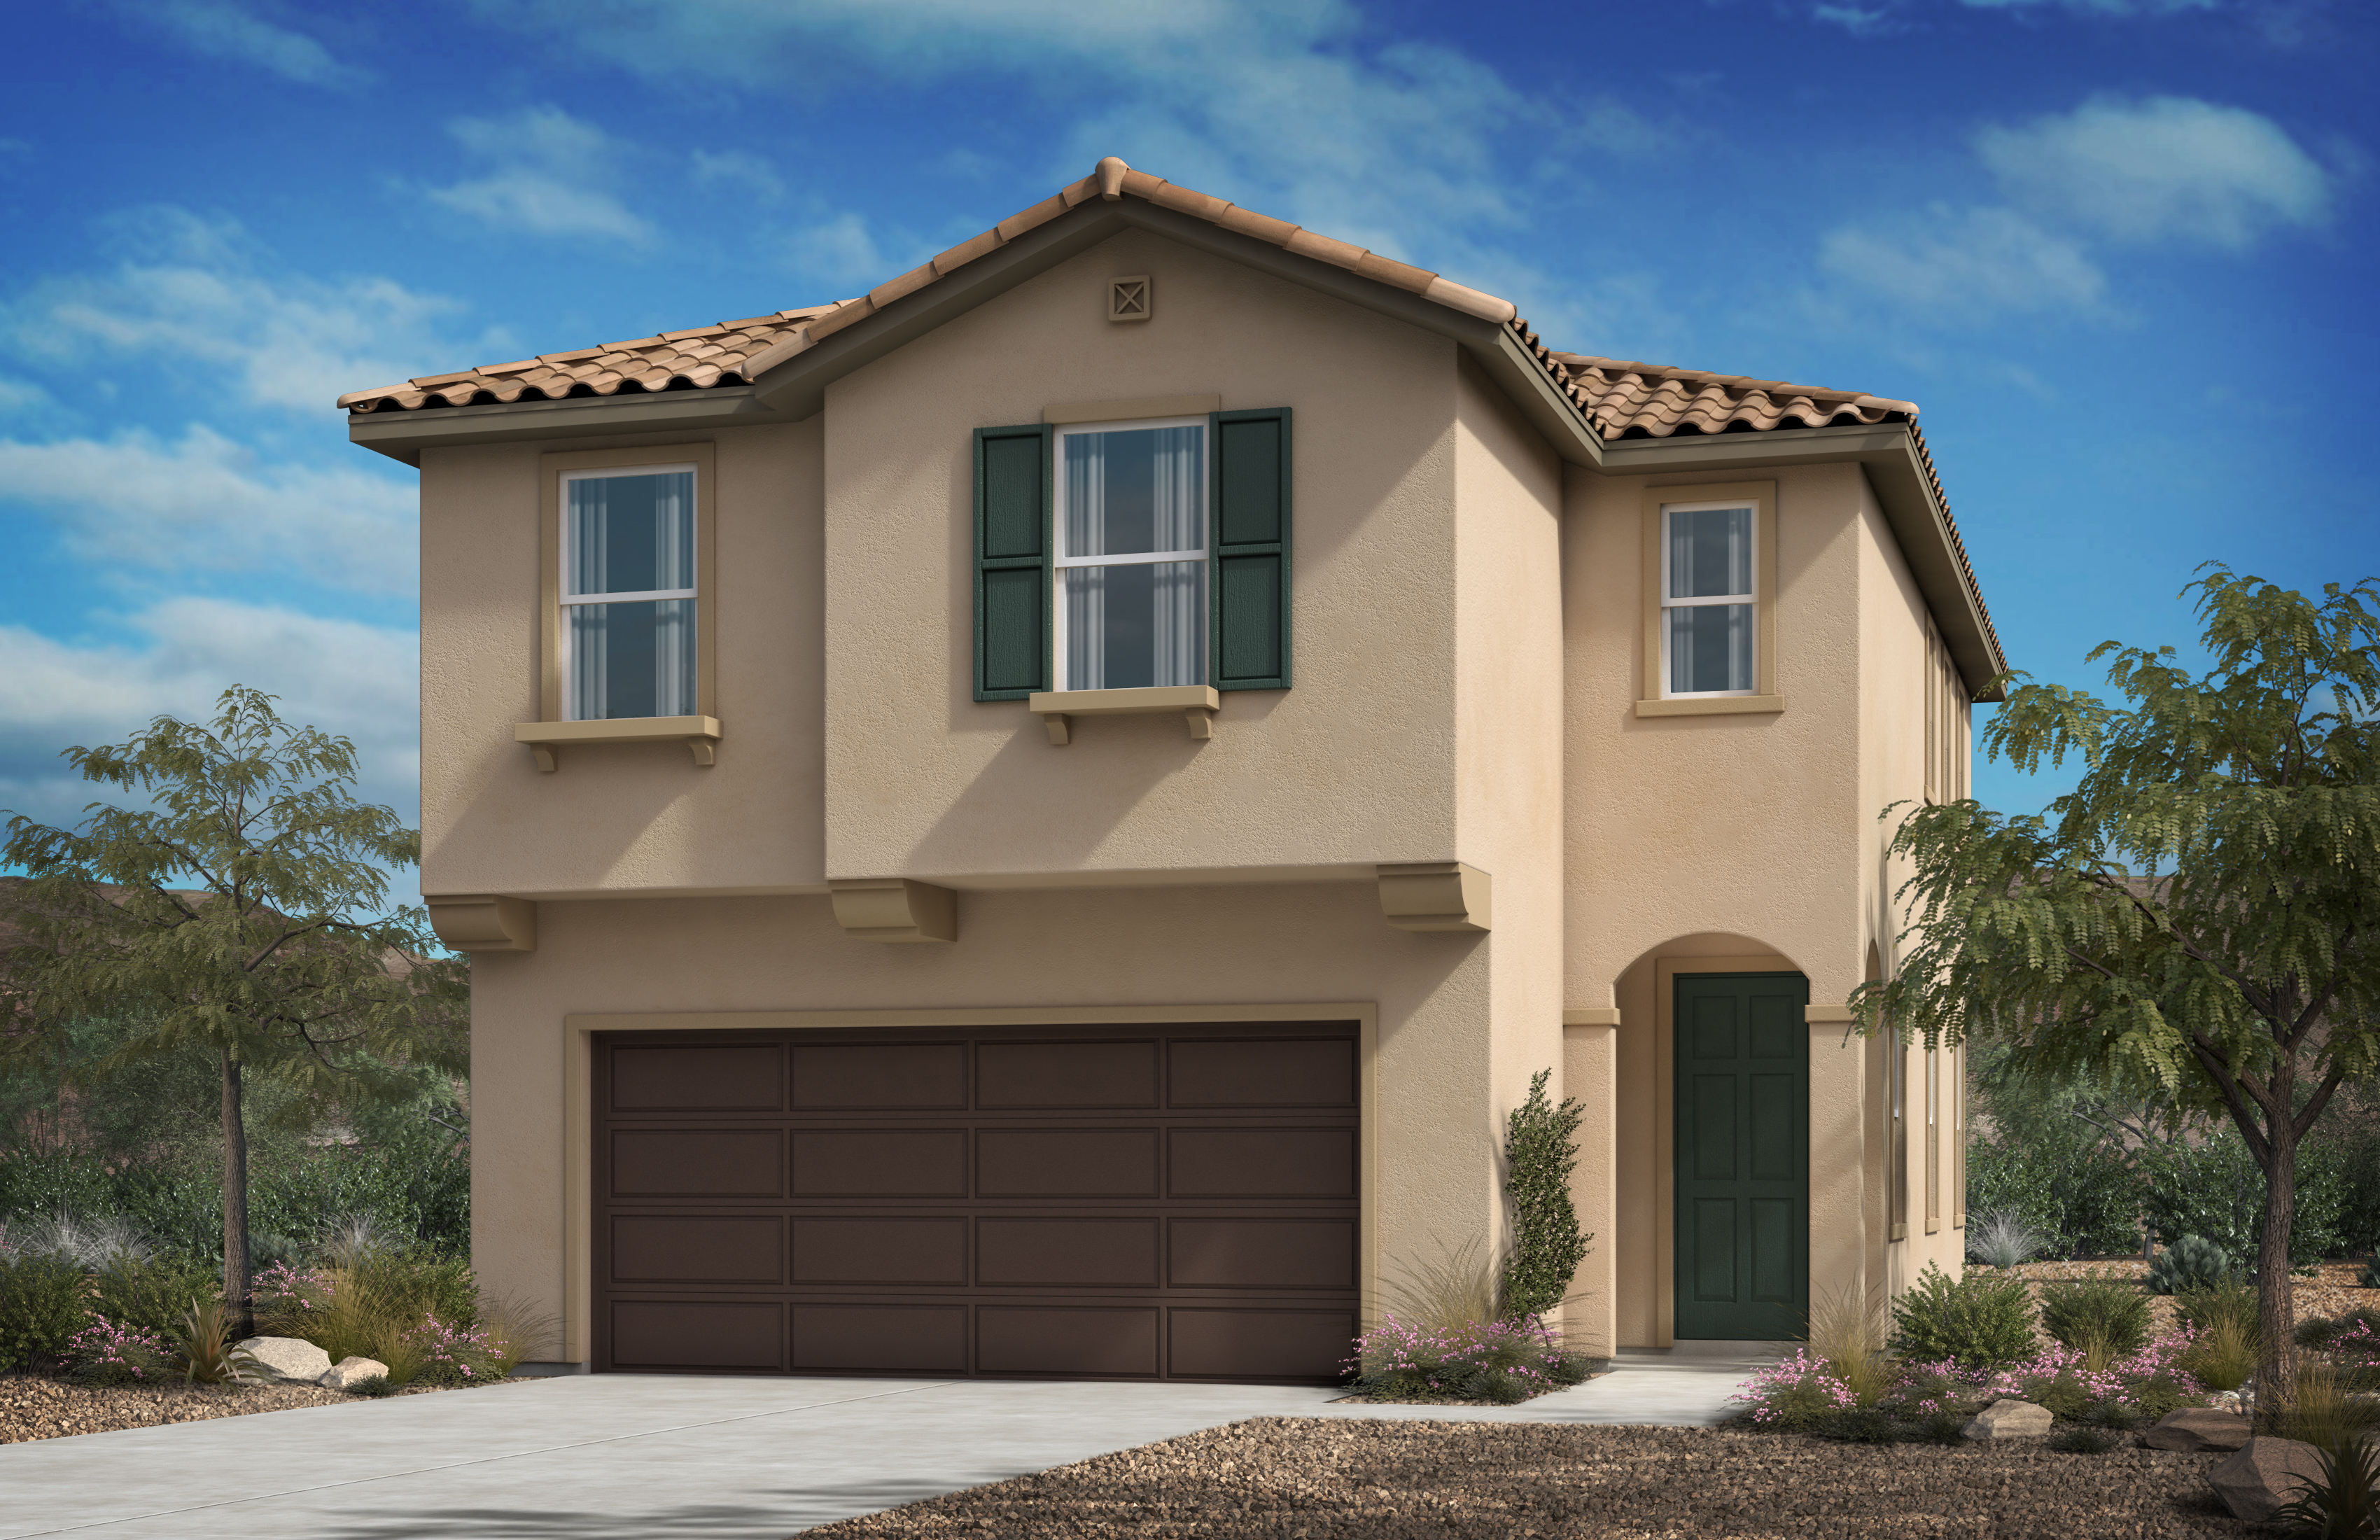 Kb Home Announces The Grand Opening Of Vista Pointe In Los Angeles